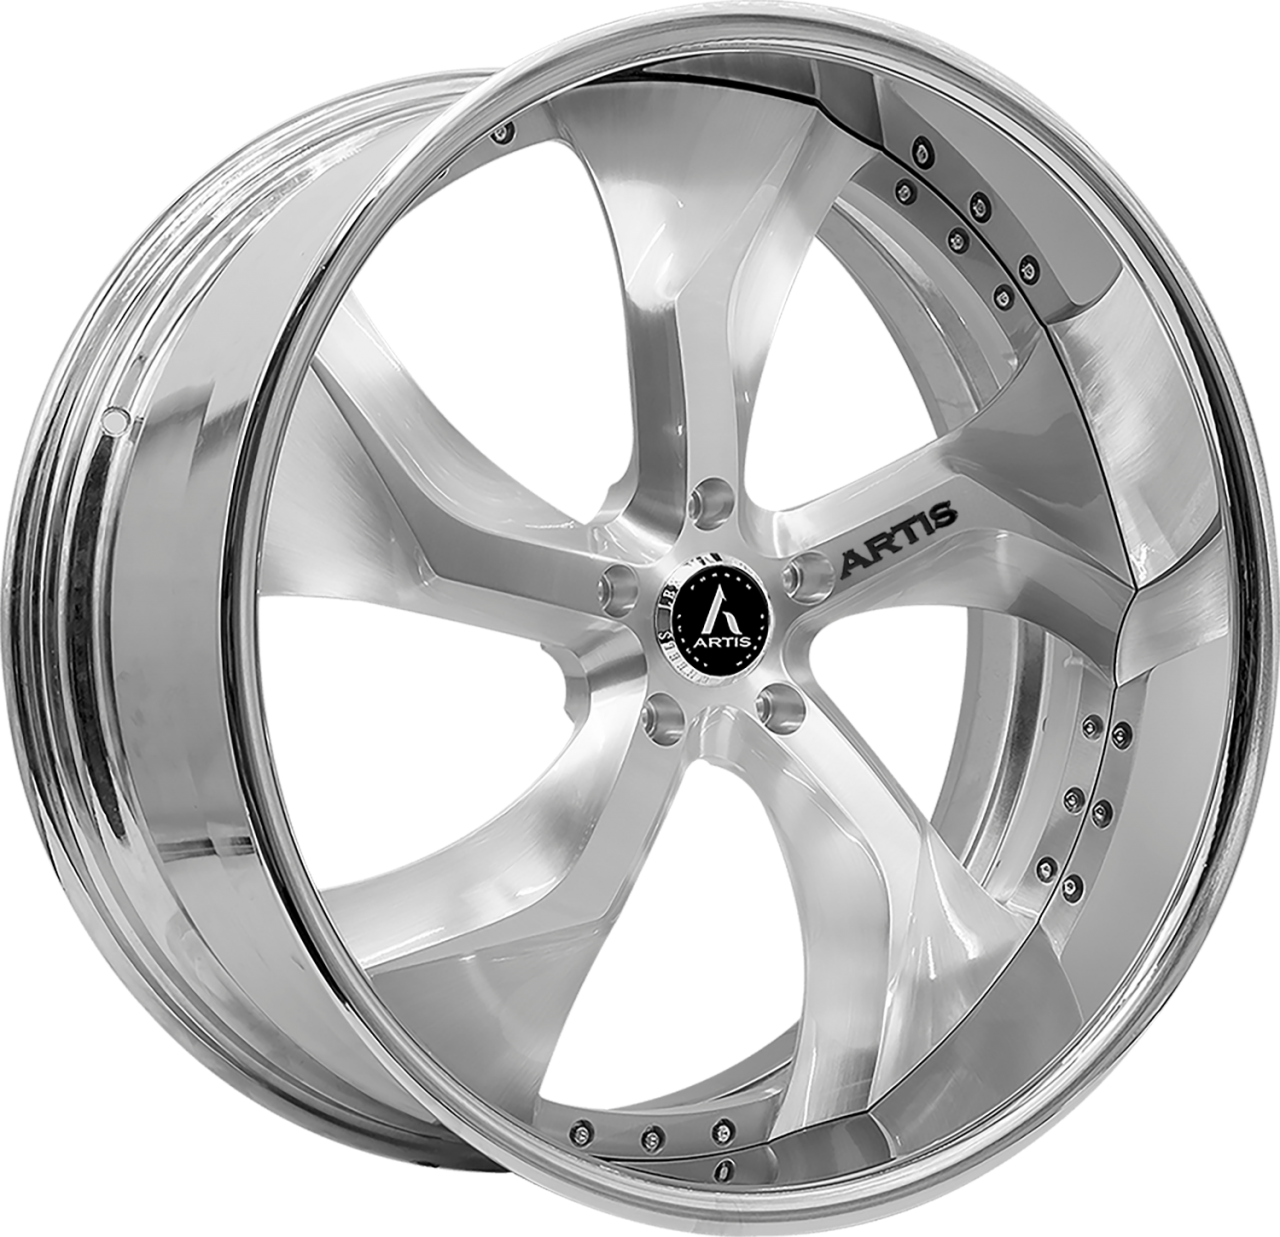 Artis Forged Bully wheel with Brushed finish